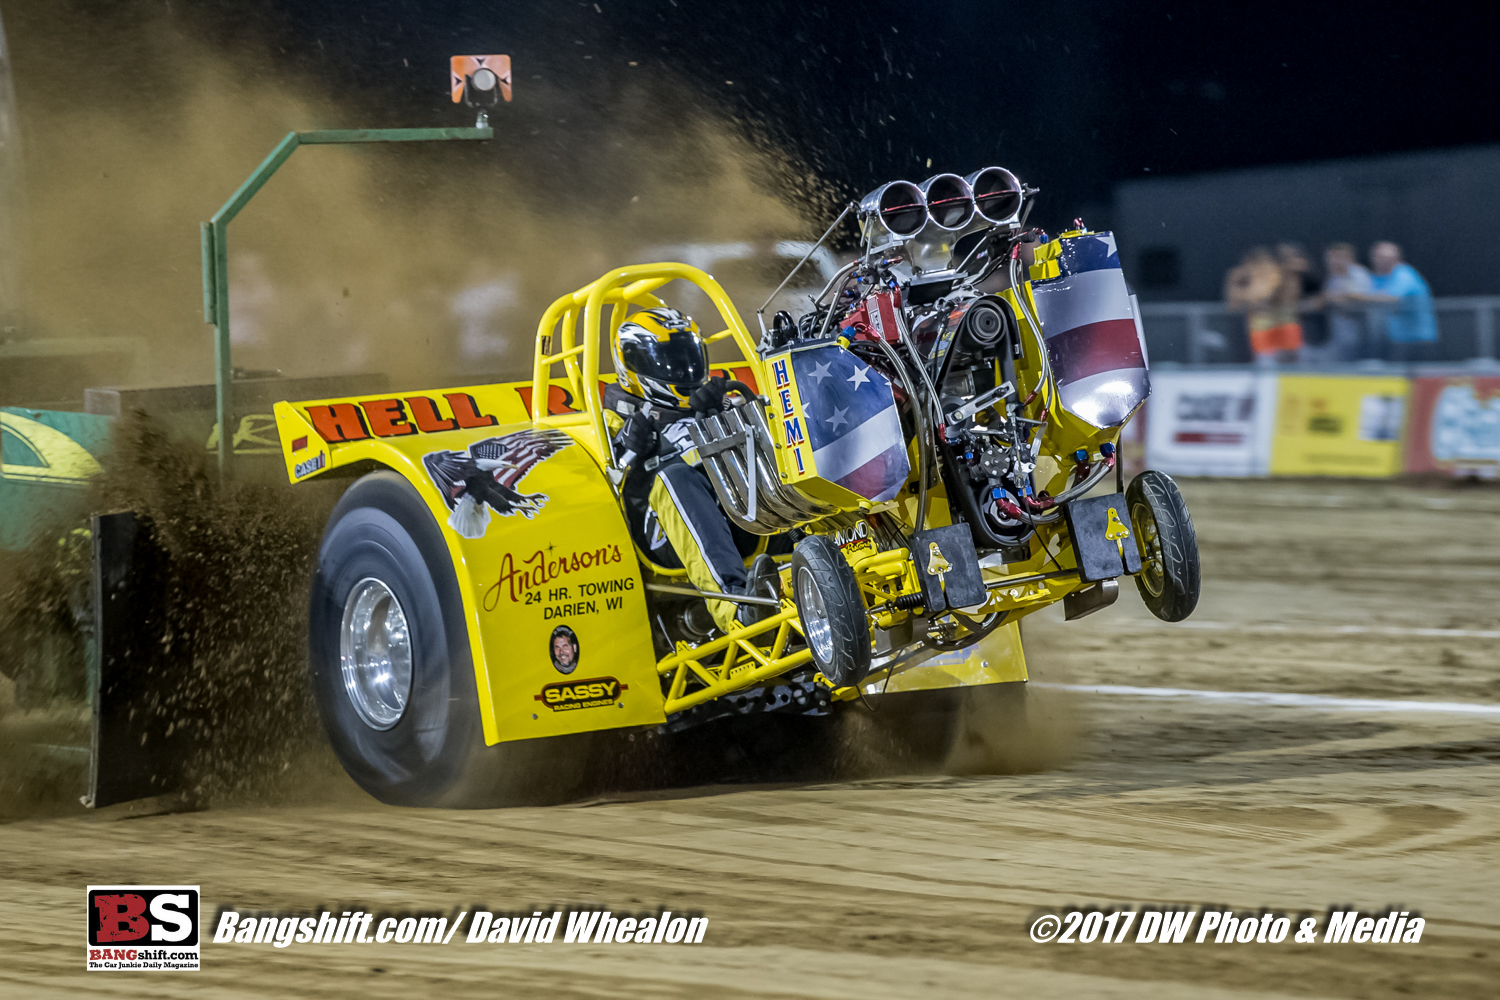 2017 Mule City 300 Action Photo Coverage: The Finest In The Pulling World Hook For Glory